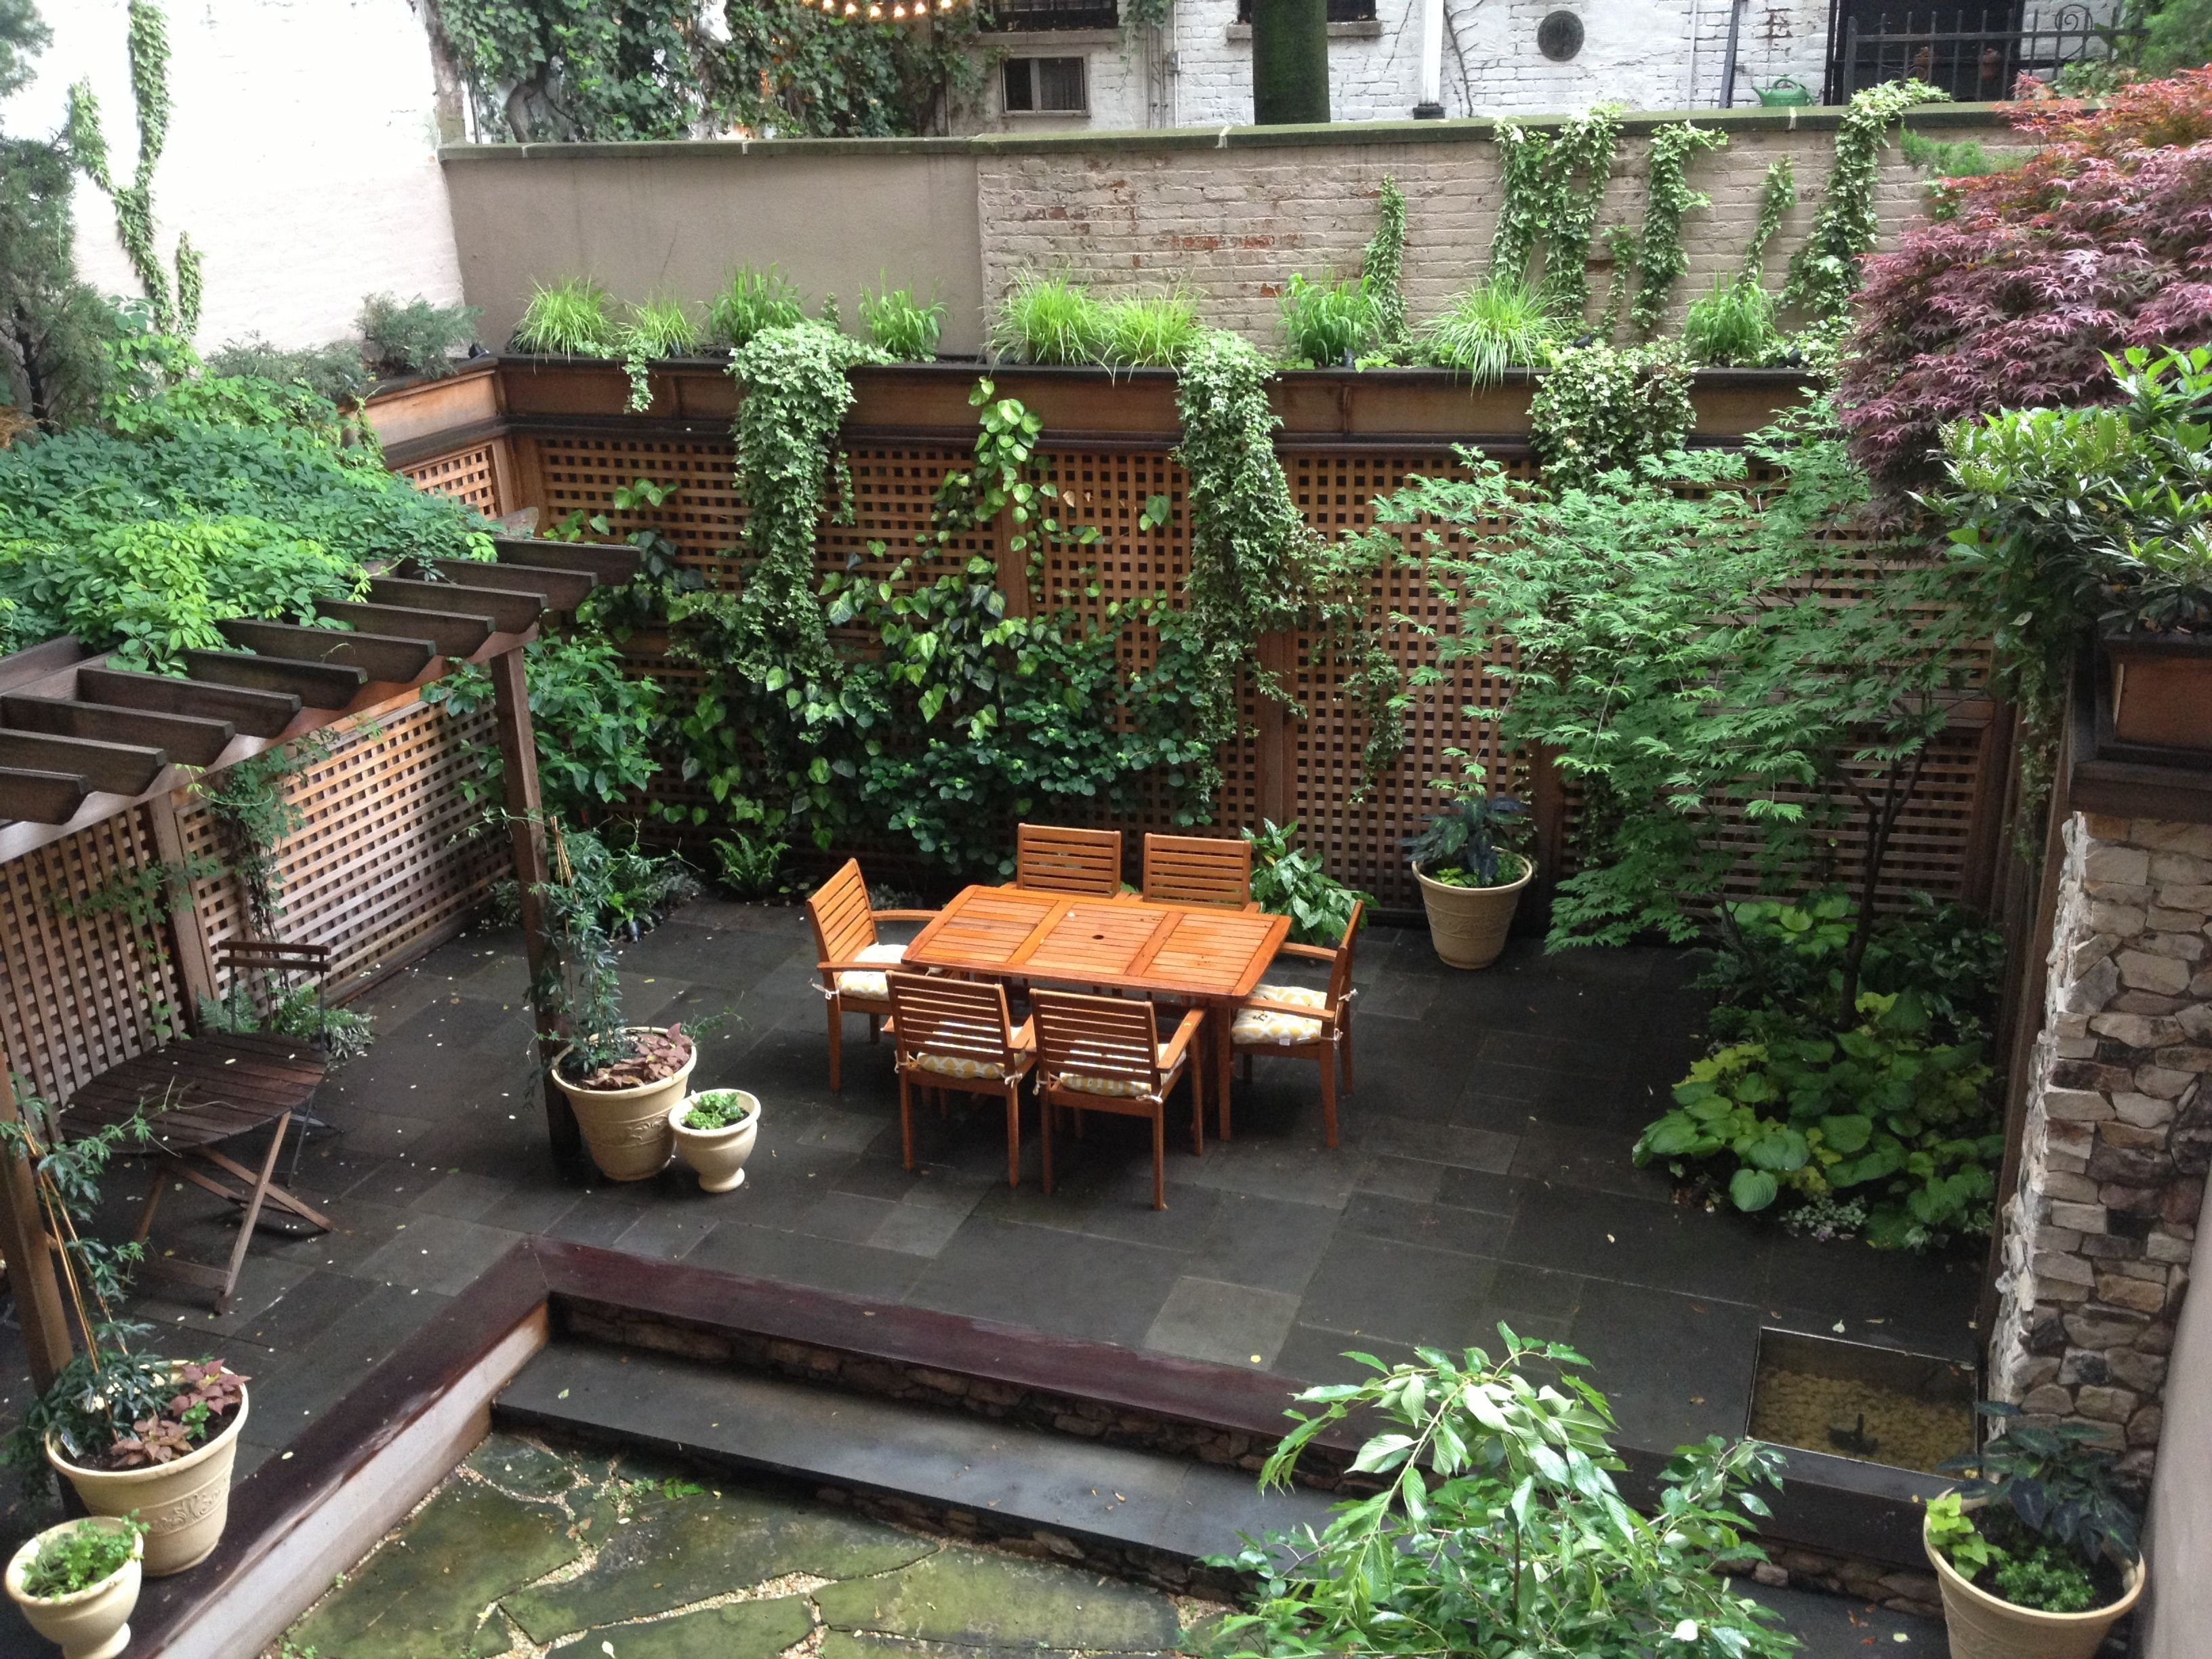 Nyc Backyard Ideas Image Result For Gardens Pinterest with 13 Genius Ways How to Make Pinterest Backyard Ideas